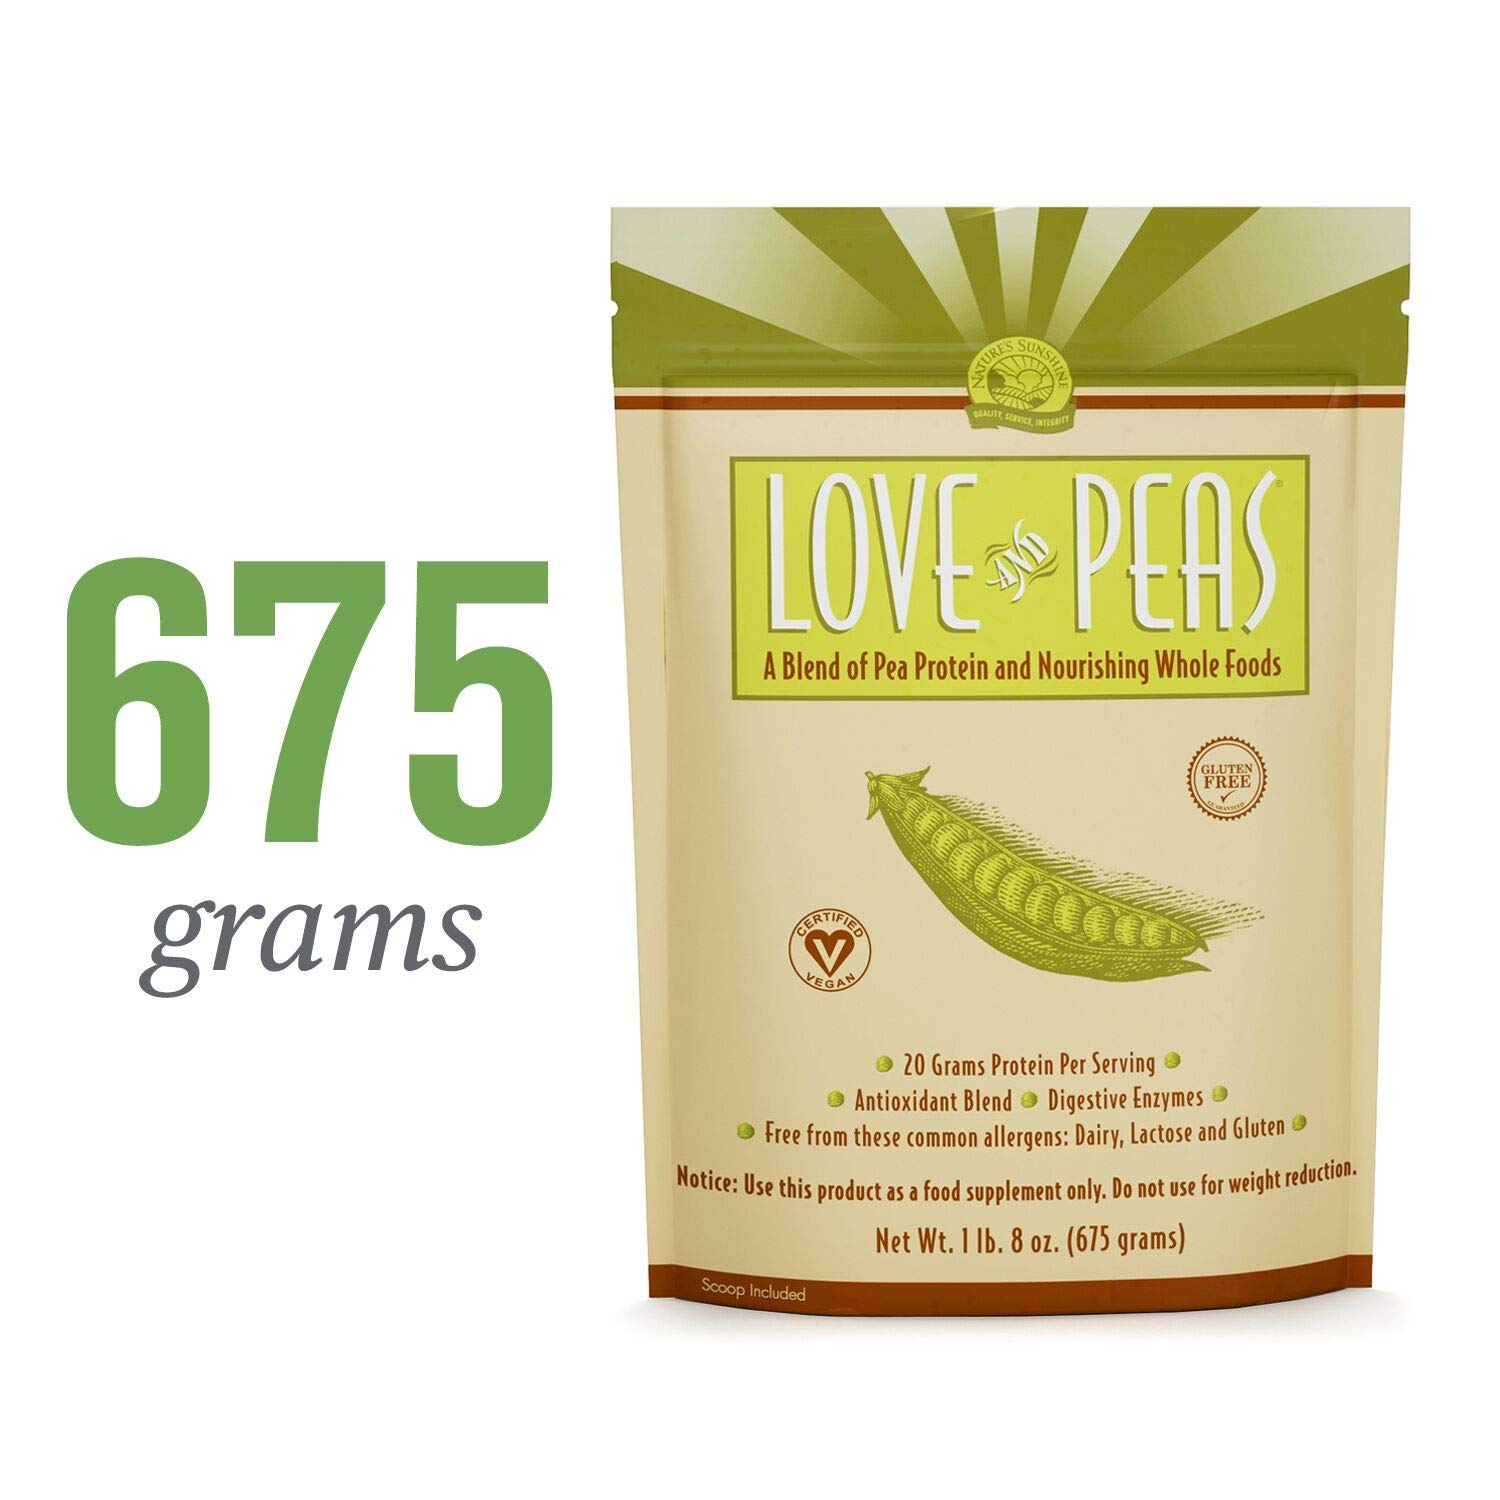 Nature s Sunshine Love and Peas, 675gr. Bag Vegan Protein Powder with Natural Pea Protein and Other Nourishing Whole Foods and Nutrients